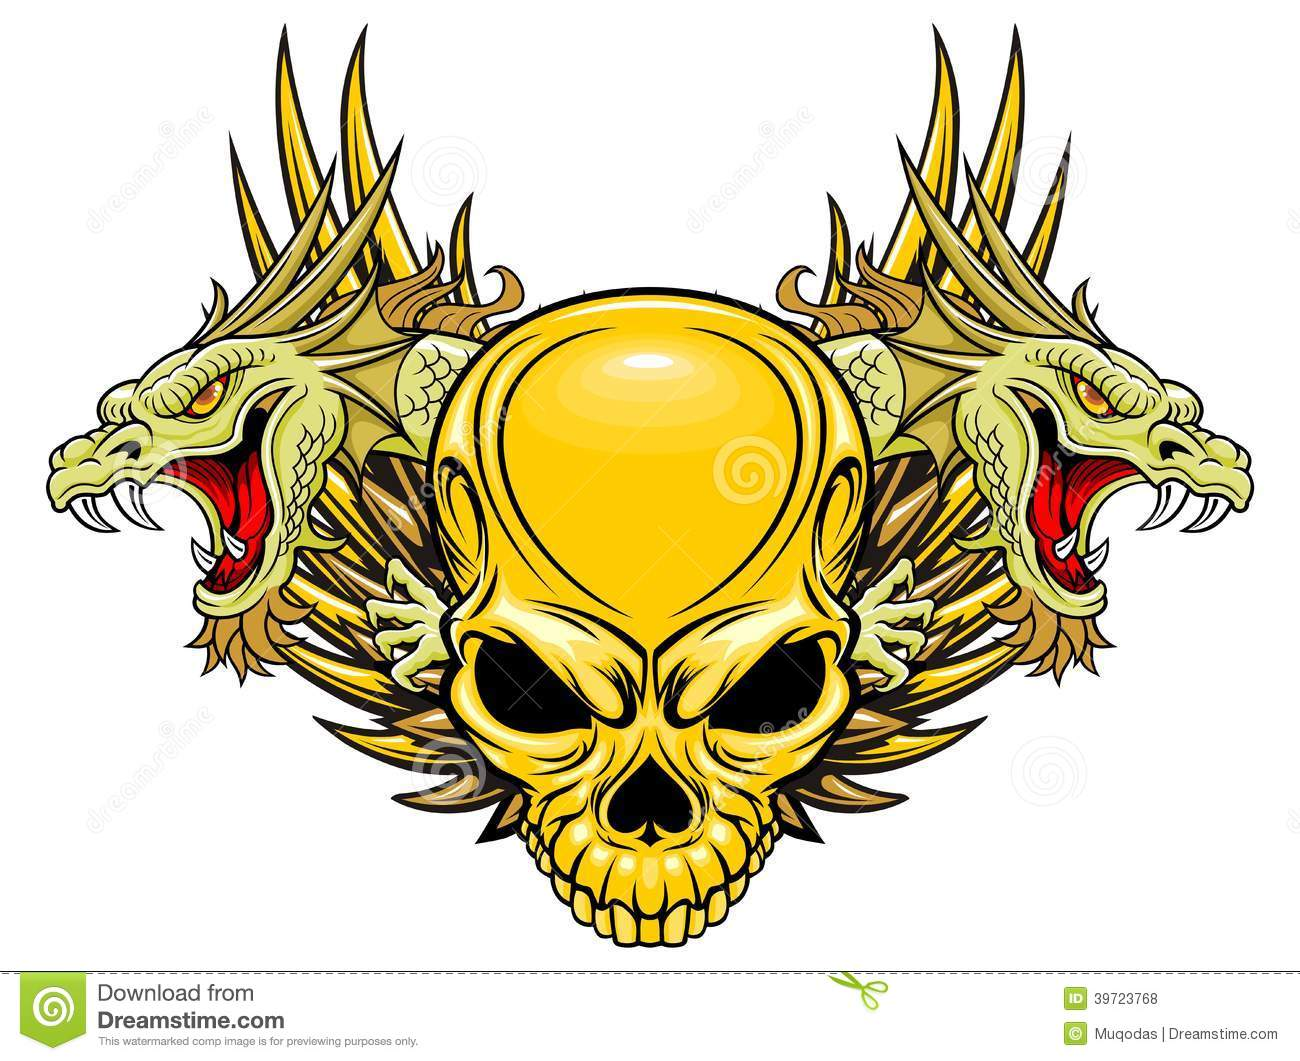 Skull and dragons